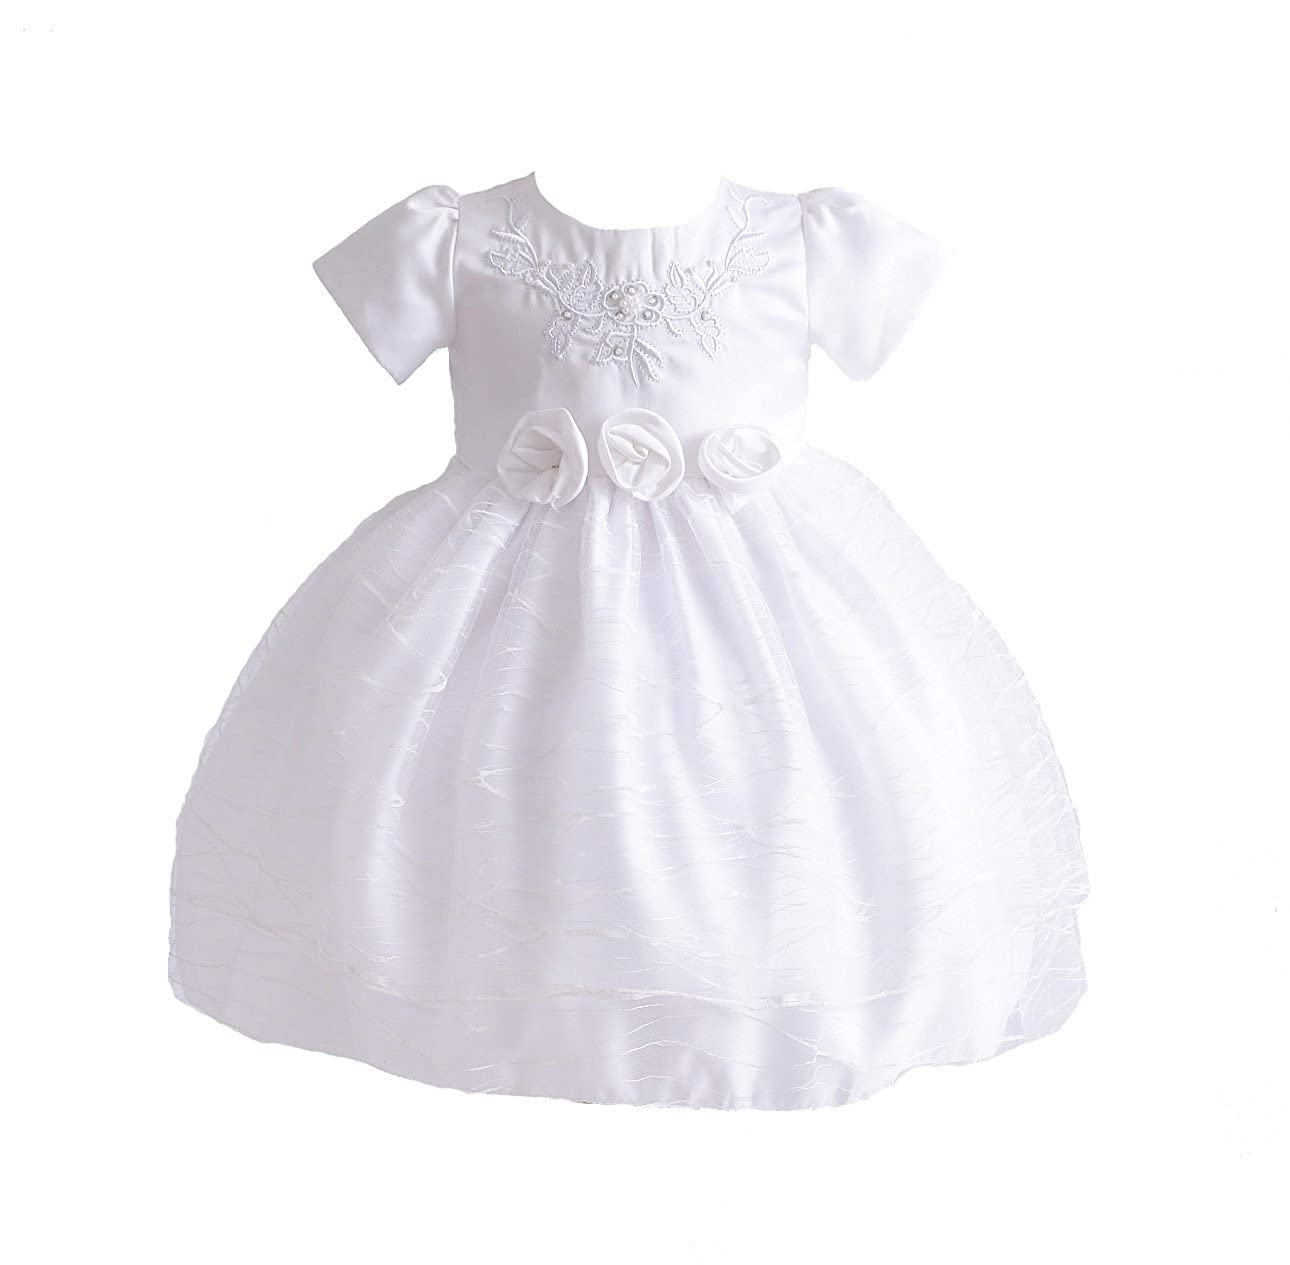 Cinda Baby Girl White Embroidered Christening Dress Party Dress GZ2304